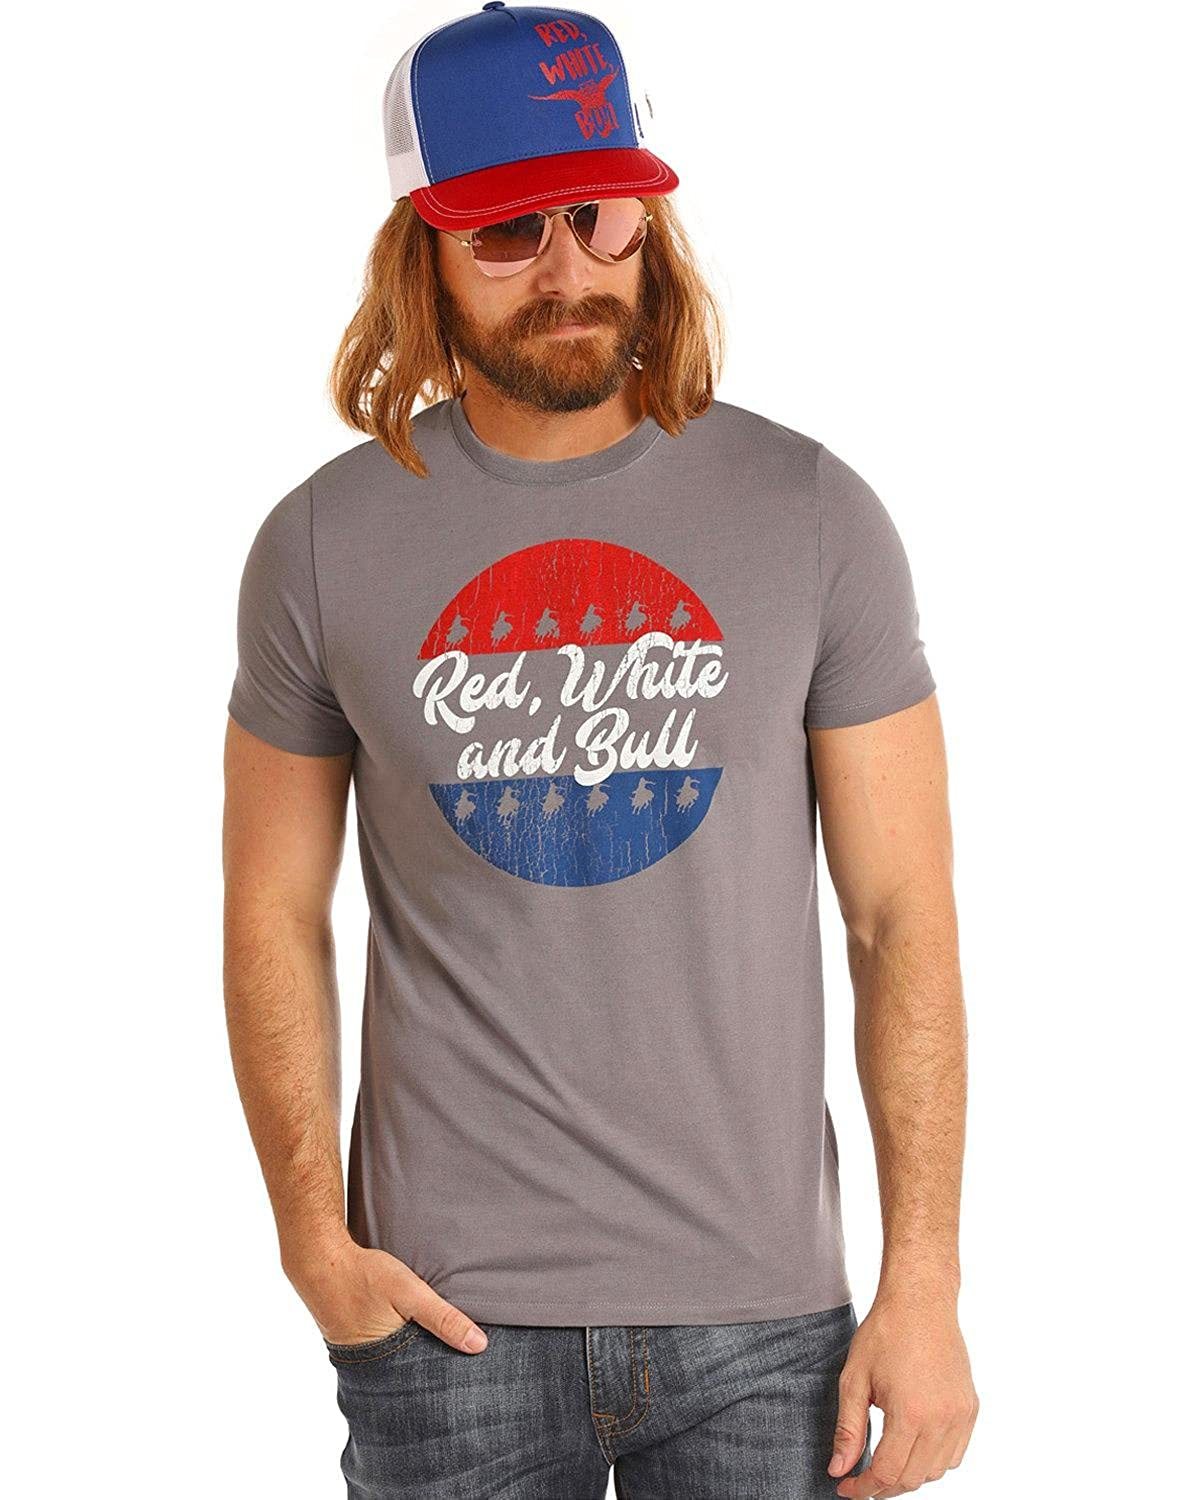 17827d2f0 DALE BRISBY Mens Red, White and Bull Tee